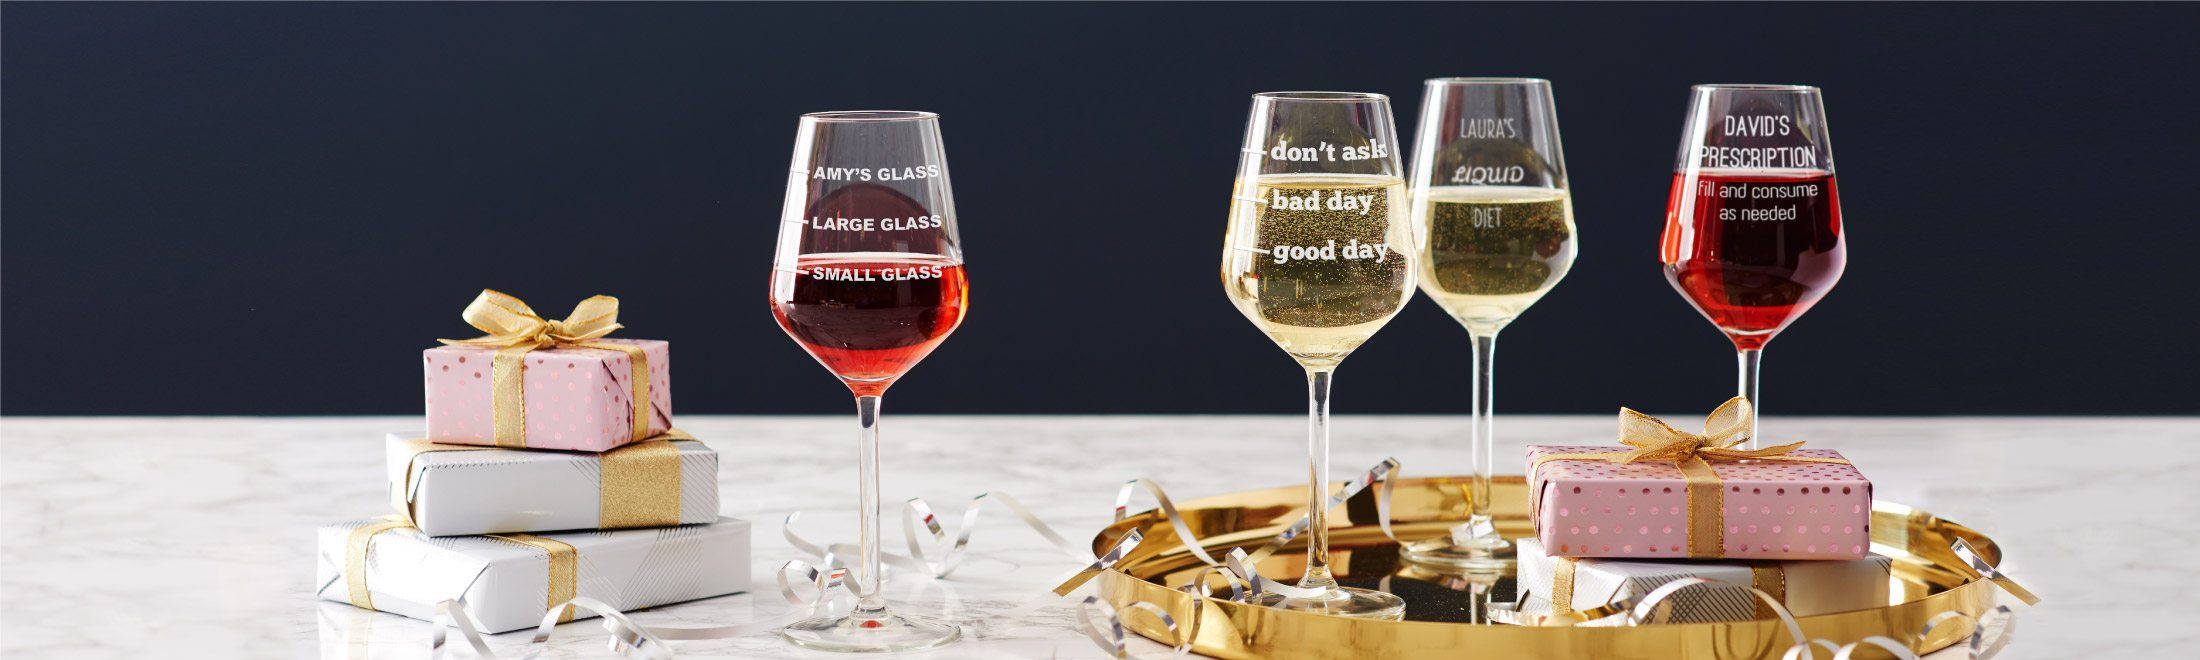 home_wineglasses